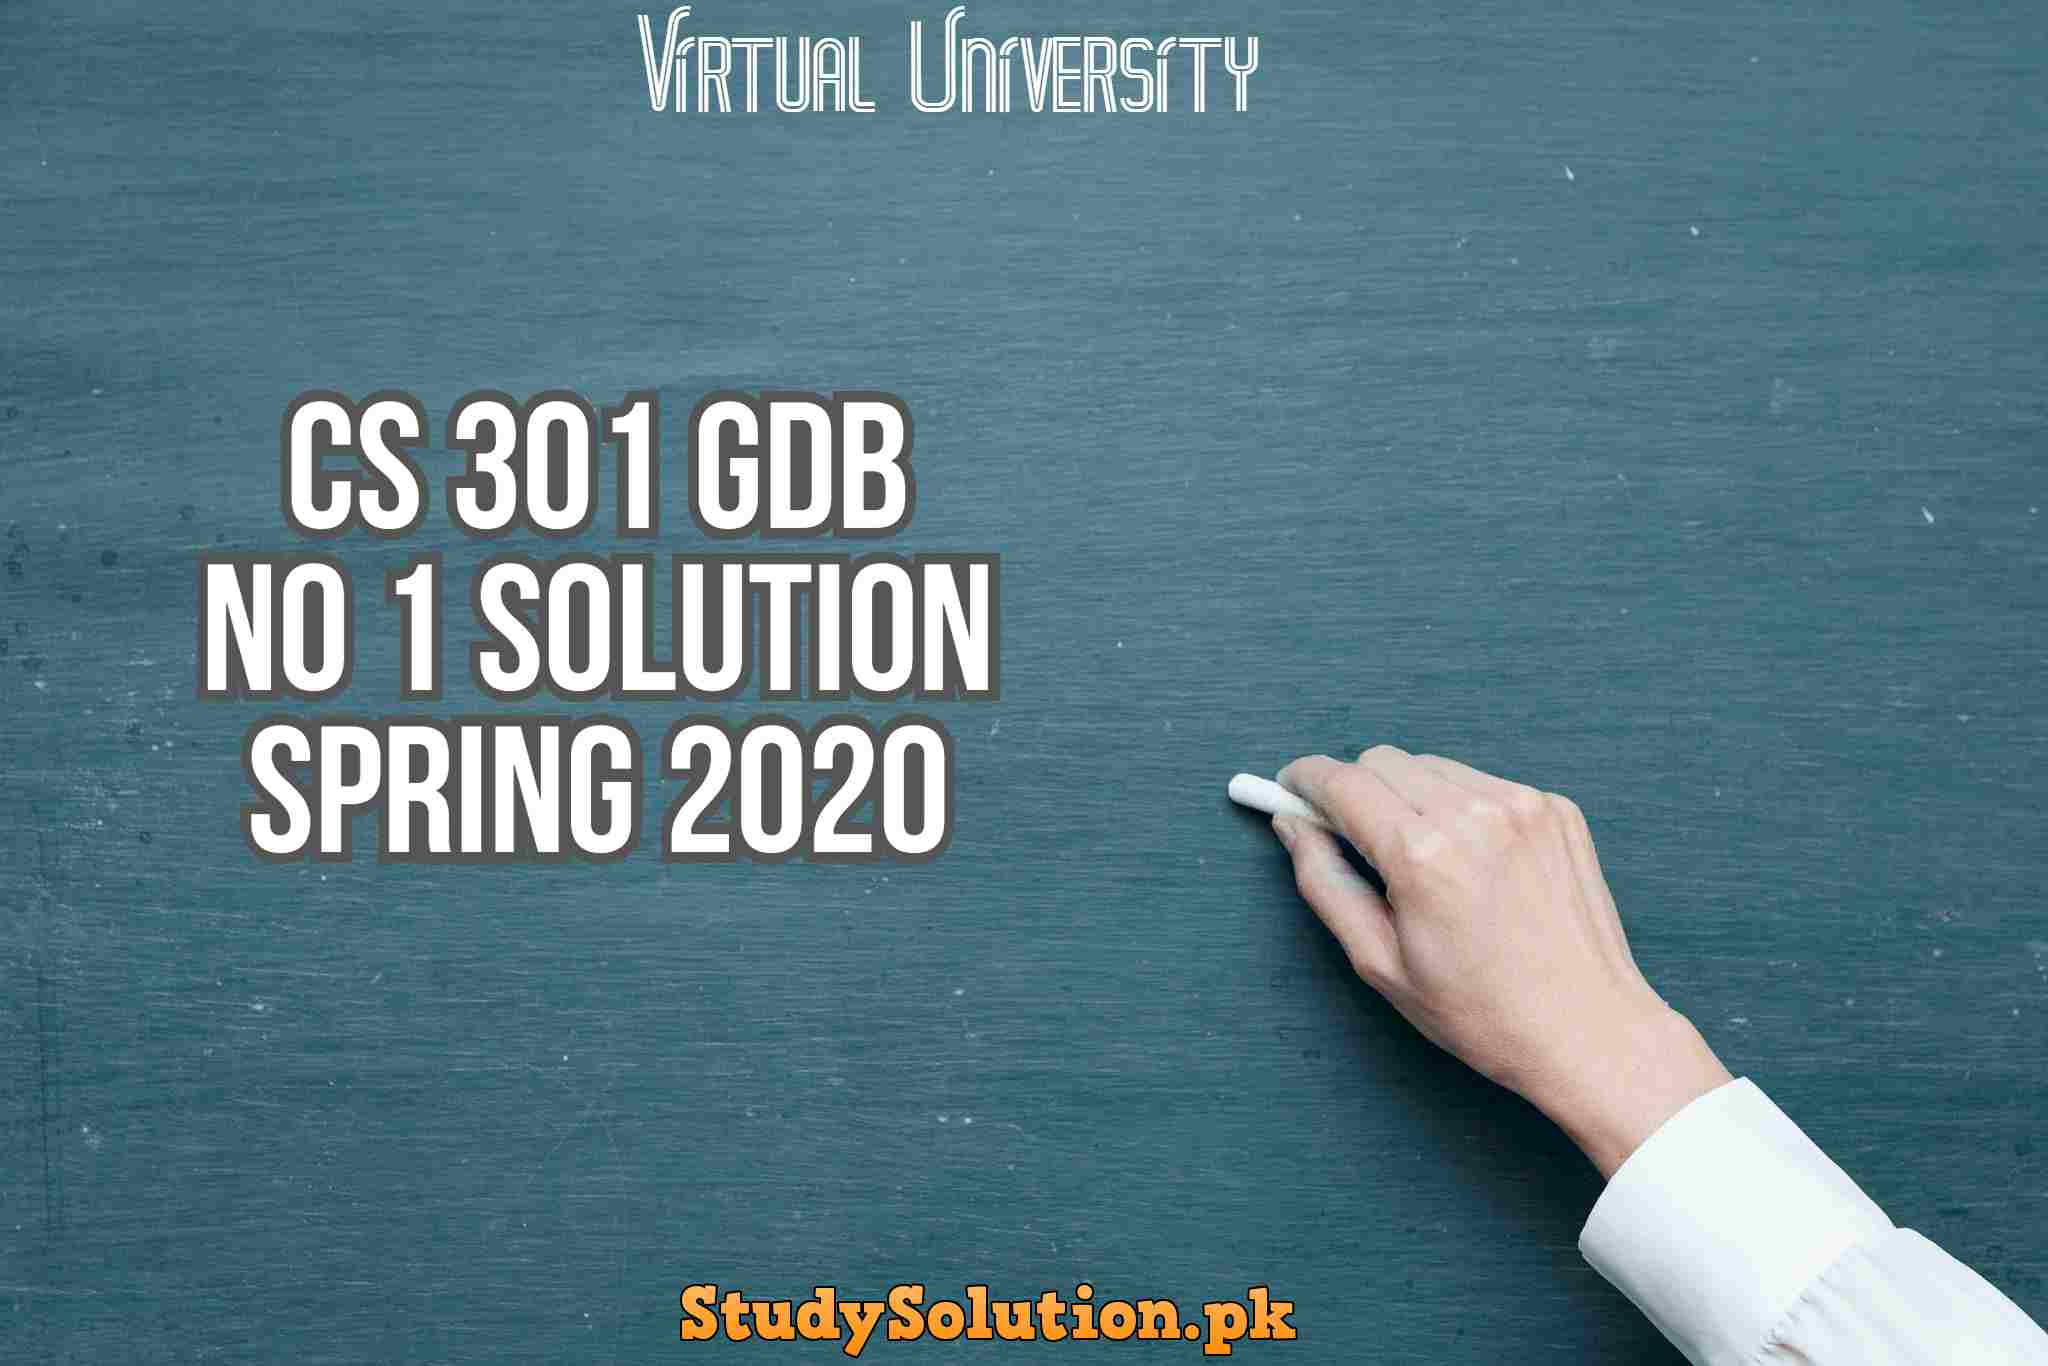 CS 301 GDB No 1 Solution Spring 2020